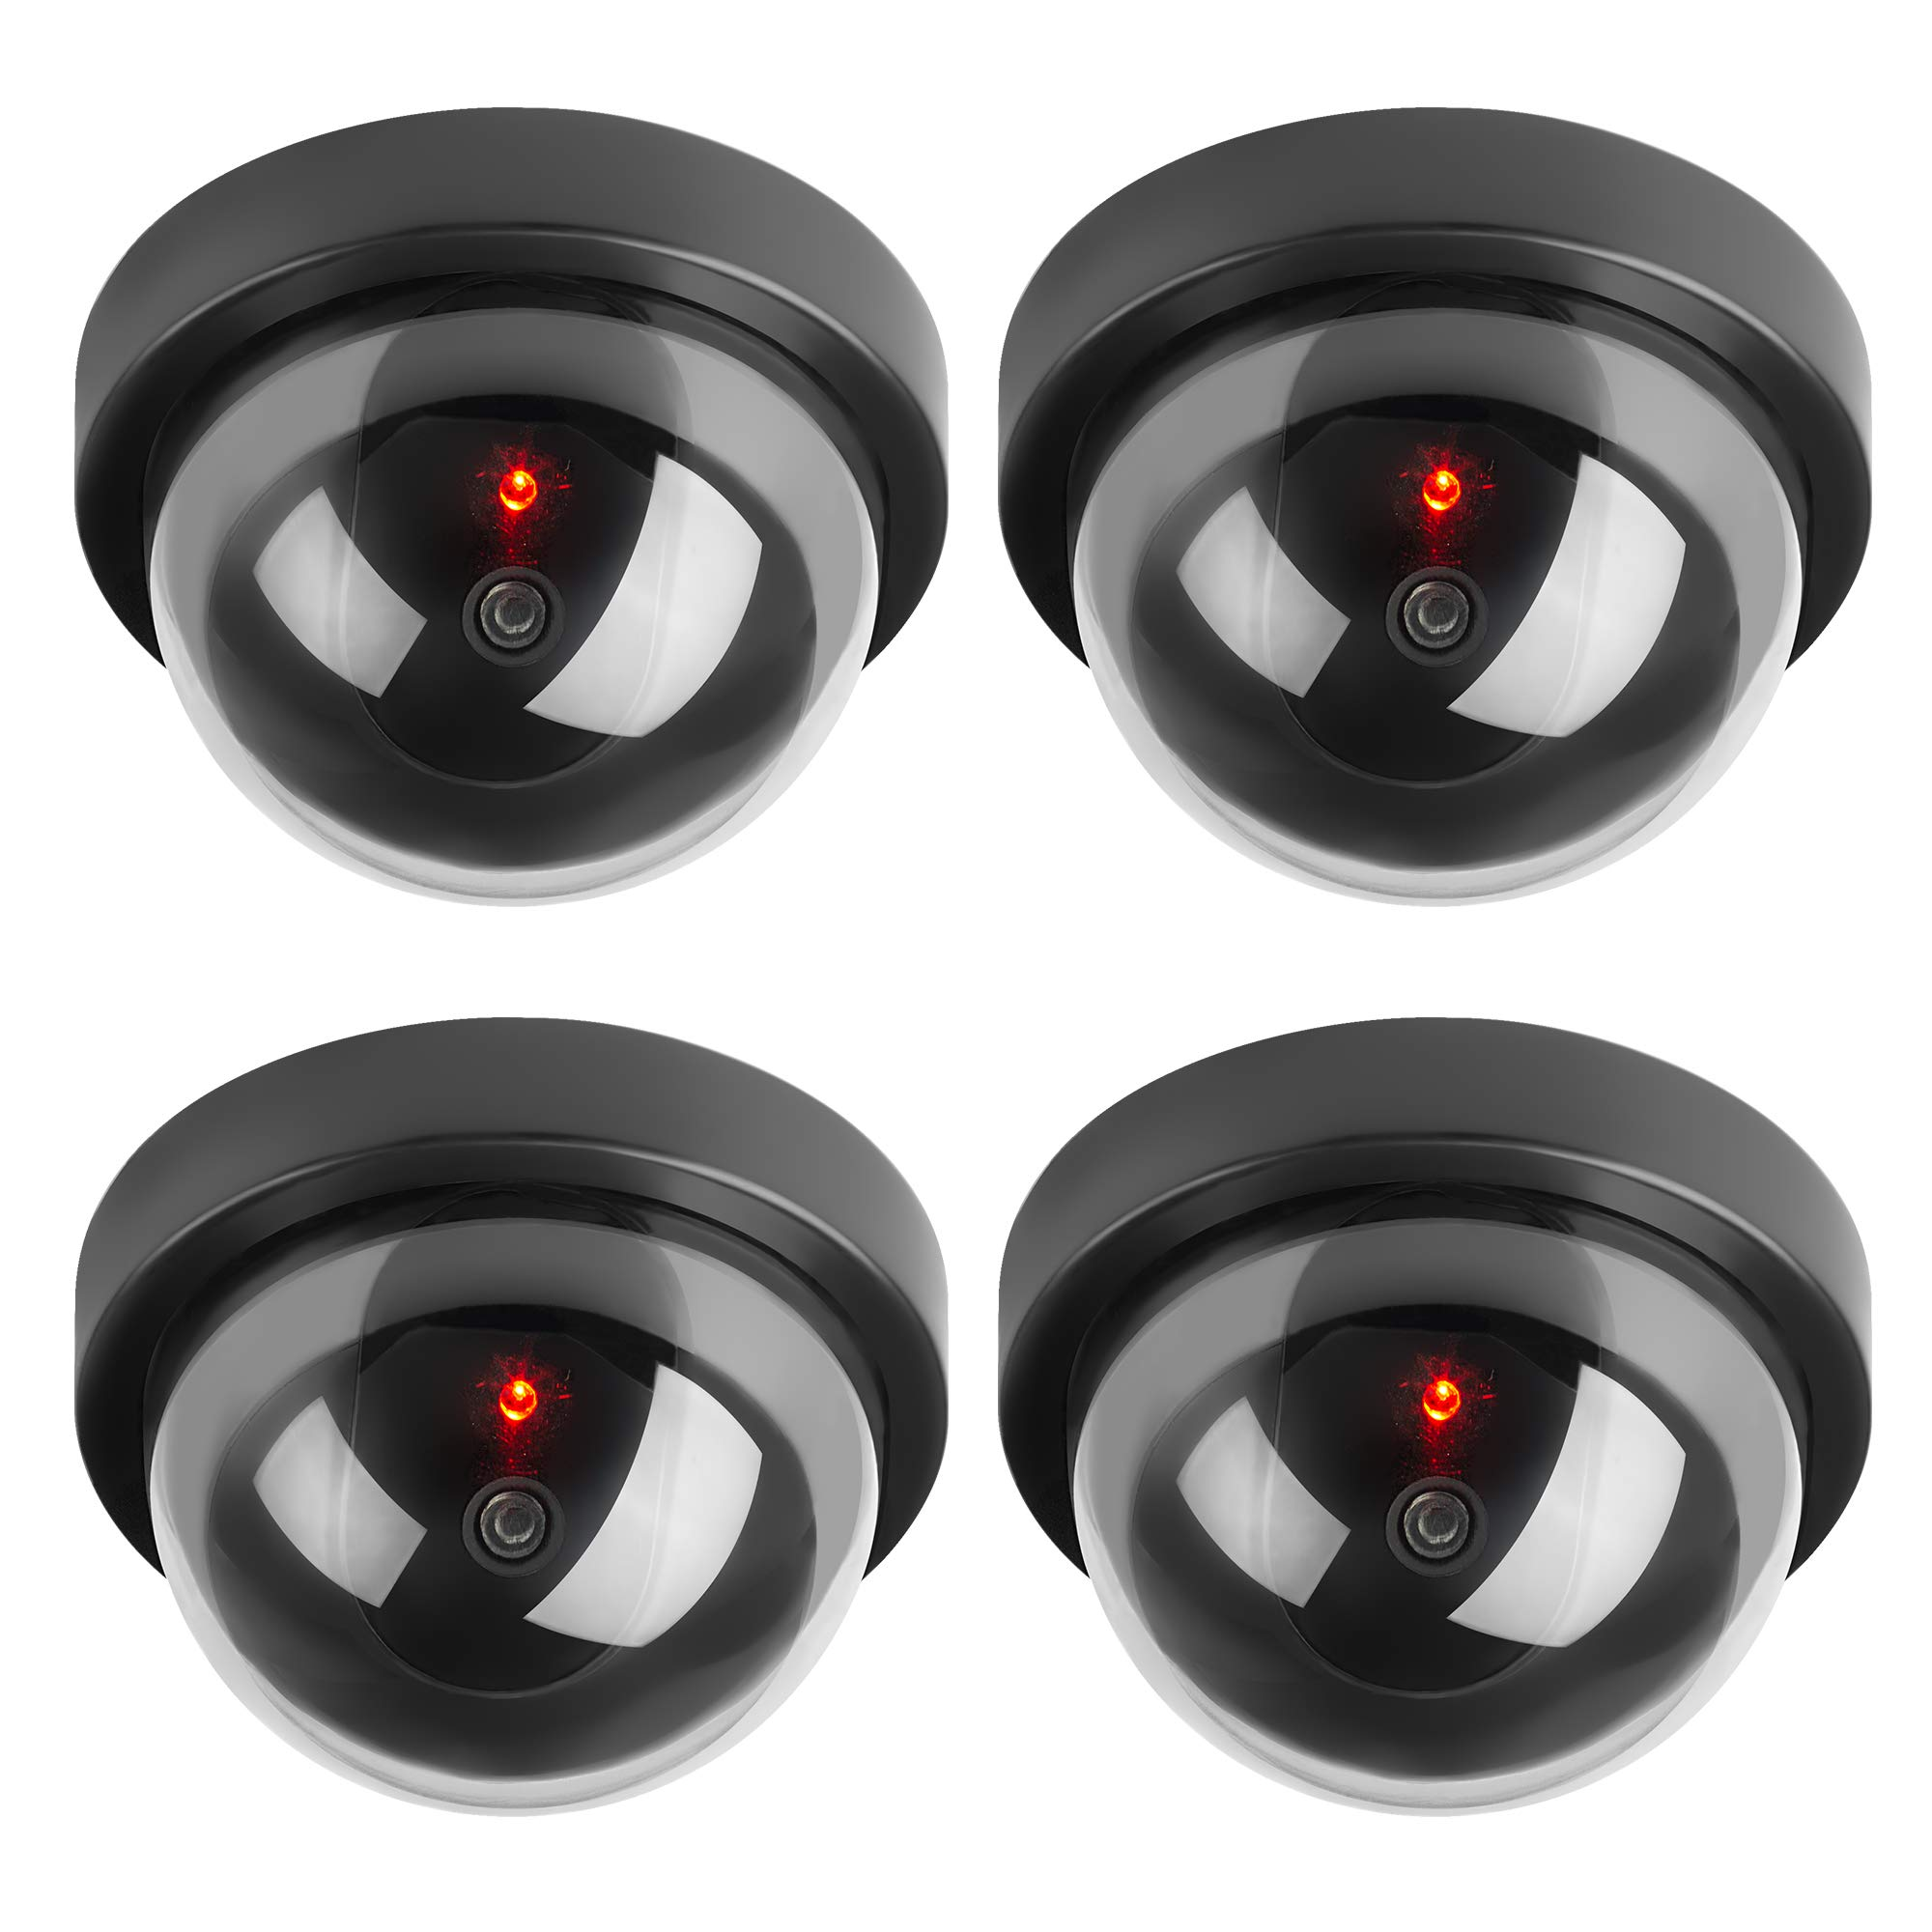 TOROTON Dummy Fake Security CCTV Dome Camera Simulation Monitor with LED Flashing Light, Outdoor and Indoor Use for Homes & Business, 4 Pack by TOROTON